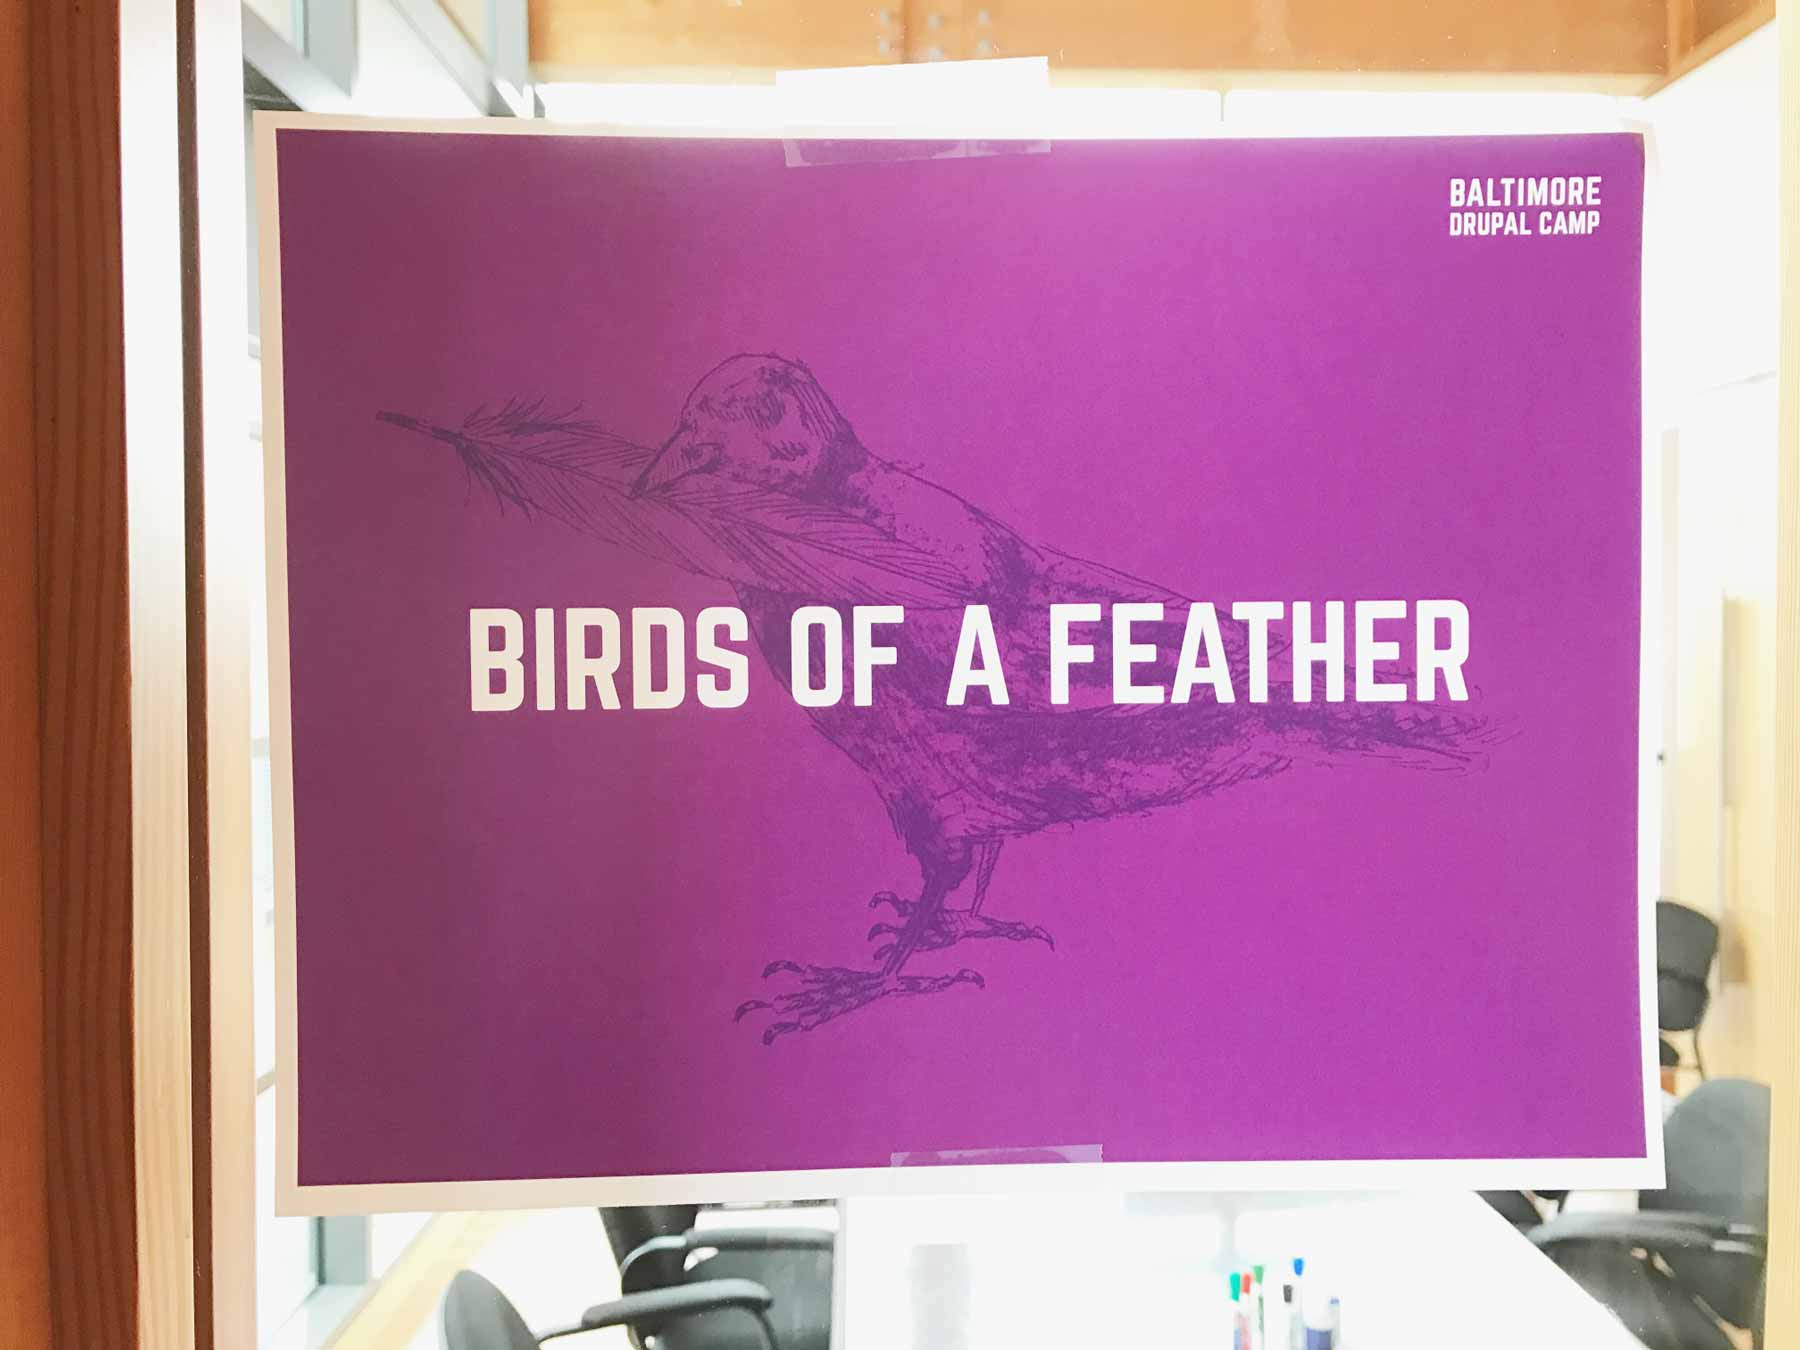 Birds of Feather sign at Baltimore Drupal camp with raven illustration